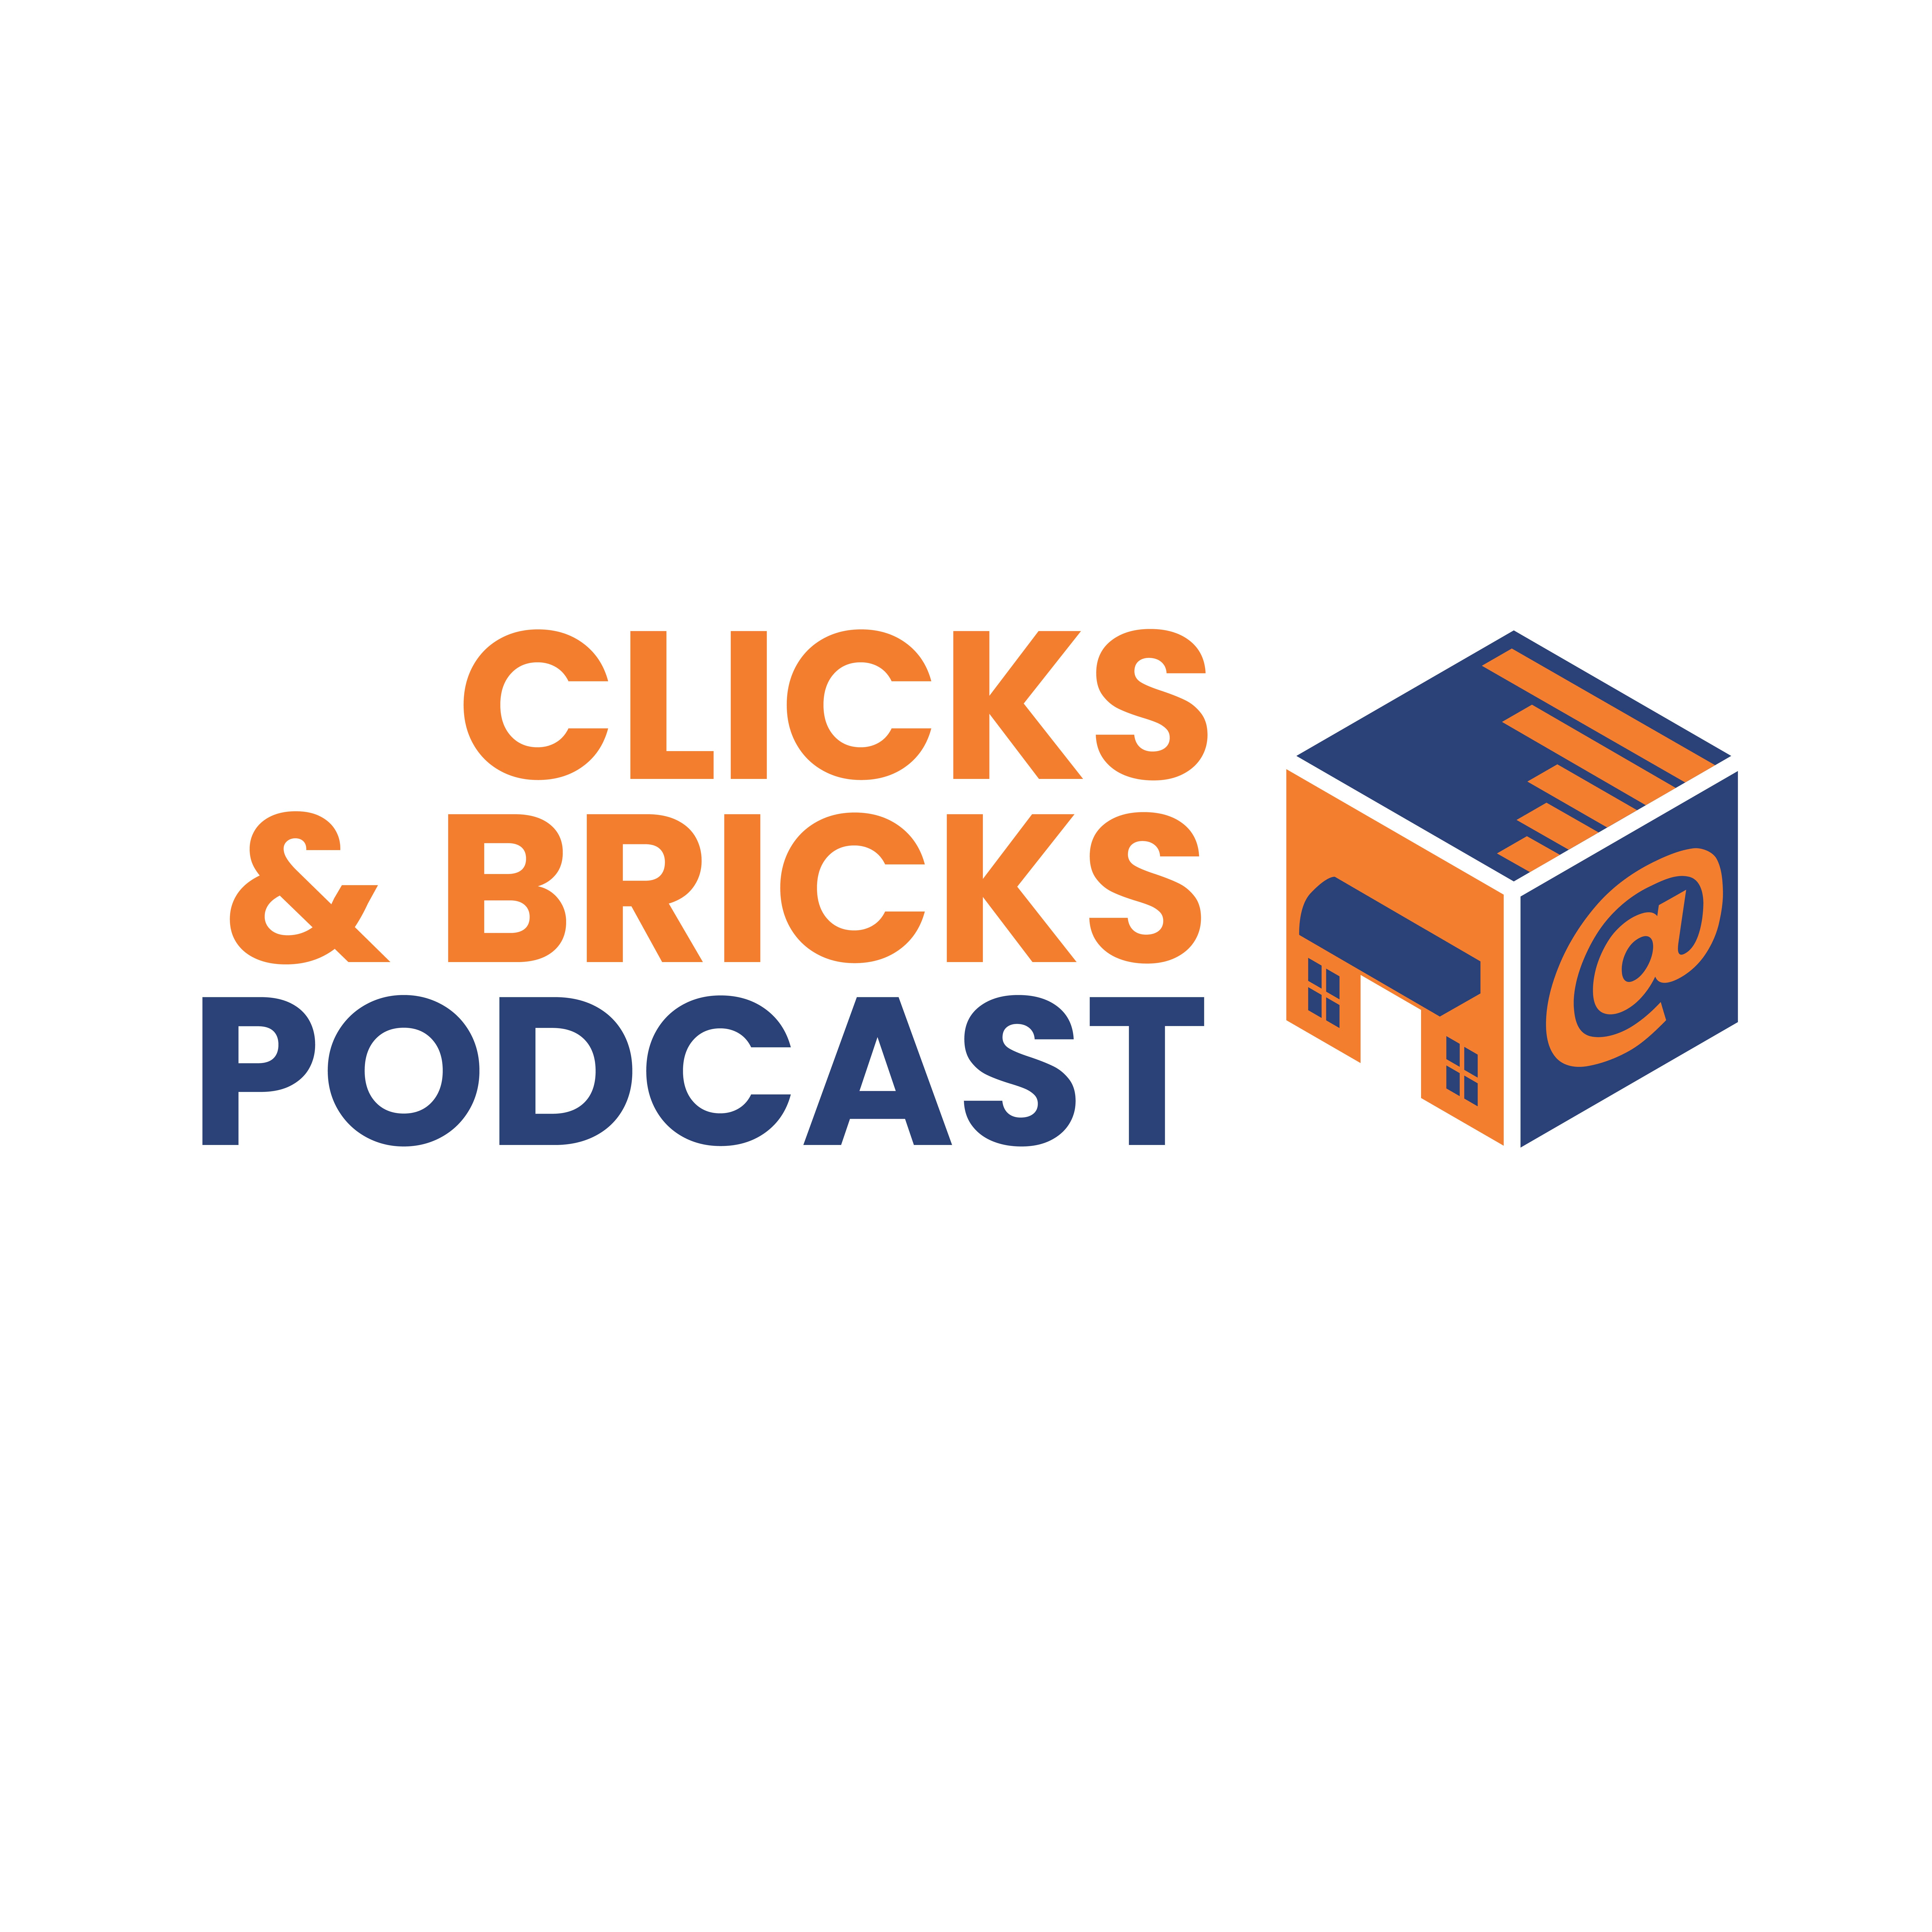 Clicks and Bricks Announces Interview with Isha Hutchinson from 410 Line Dancers